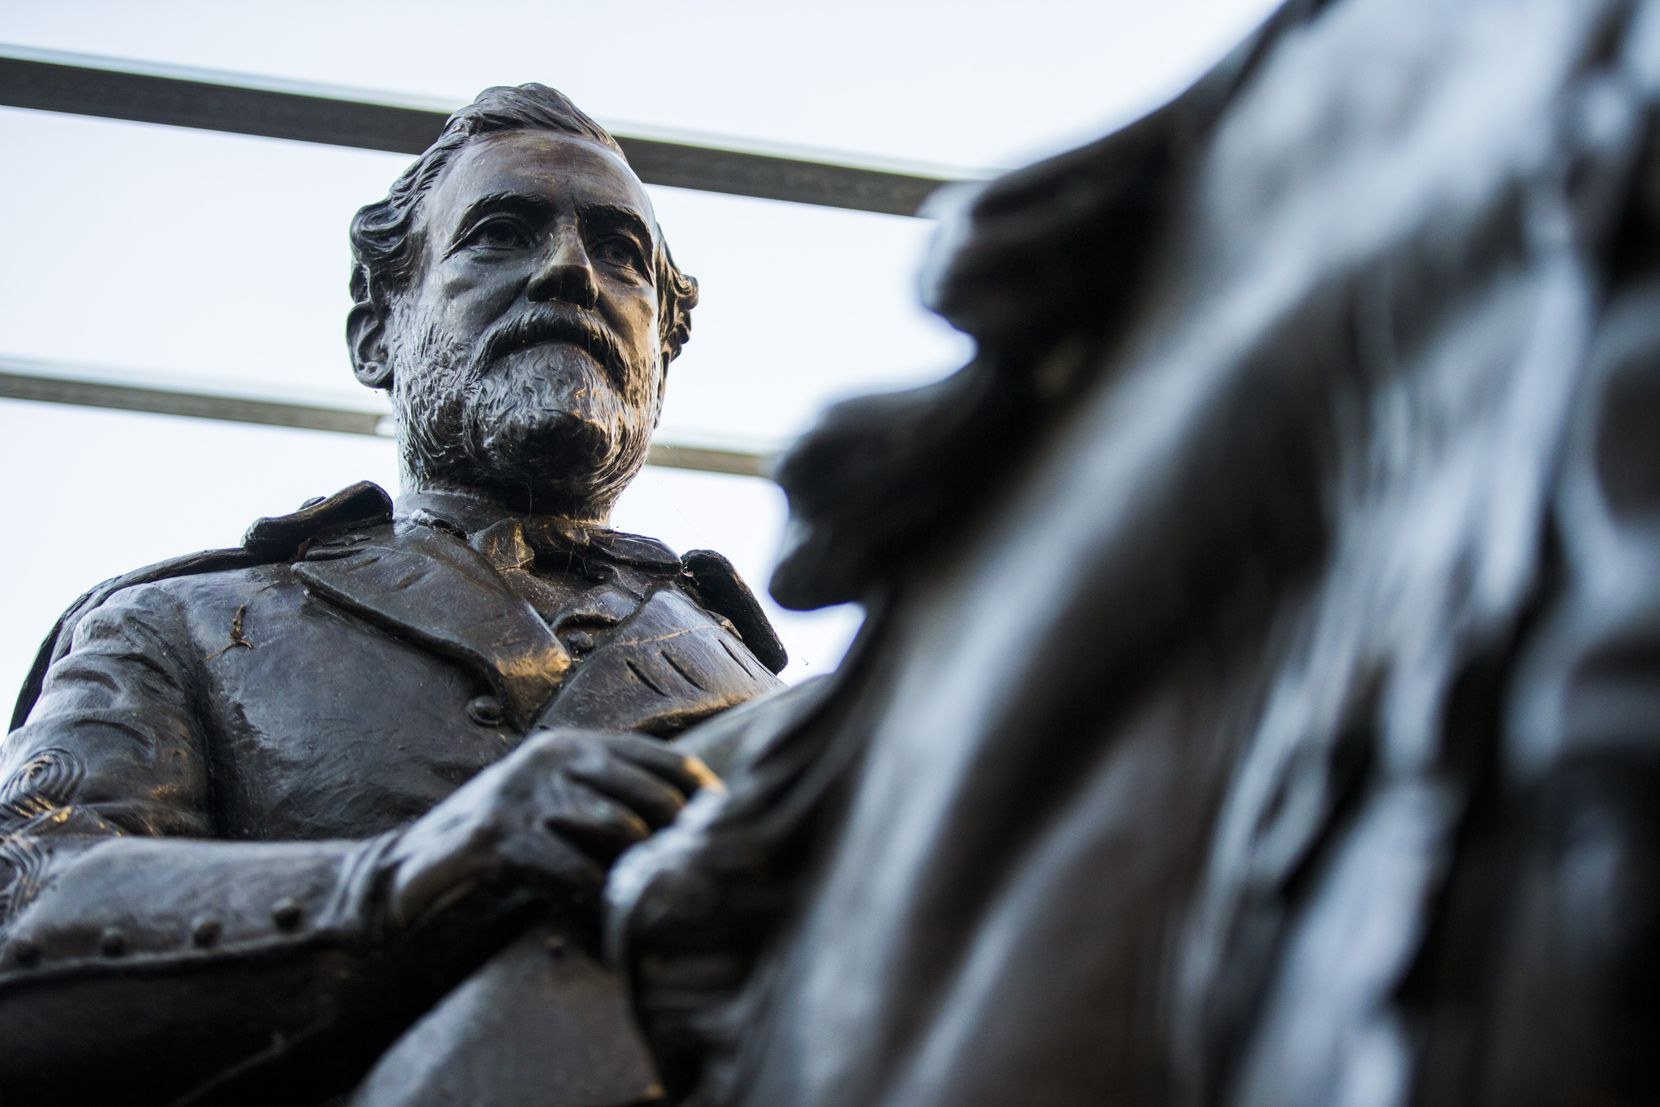 The buyer of the Lee statue for more than $1.4 million in a Dallas auction has been identified as a local law firm, but the reason for the purchase still remains unclear. (Ashley Landis/The Dallas Morning News)